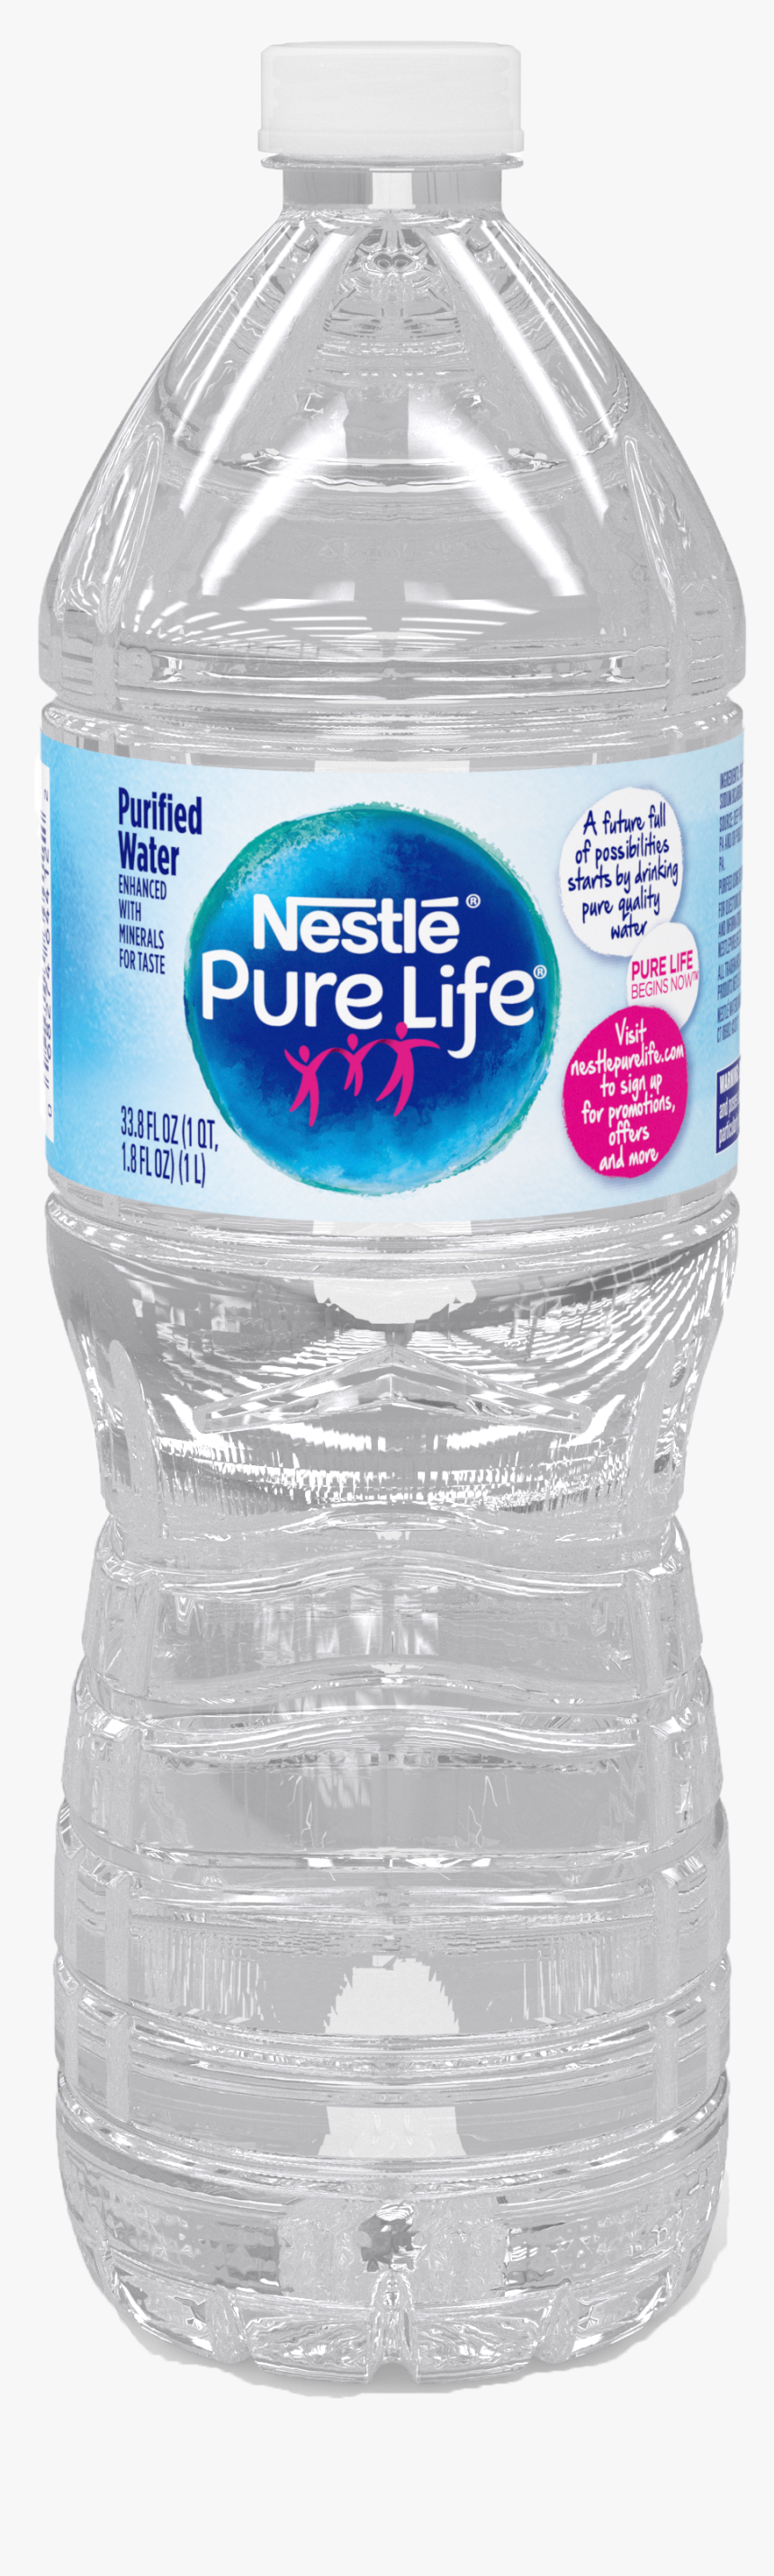 Plastic Bottle,water Bottle,bottled Water,drinking - Nestle Pure Life Bottle 2019, HD Png Download, Free Download